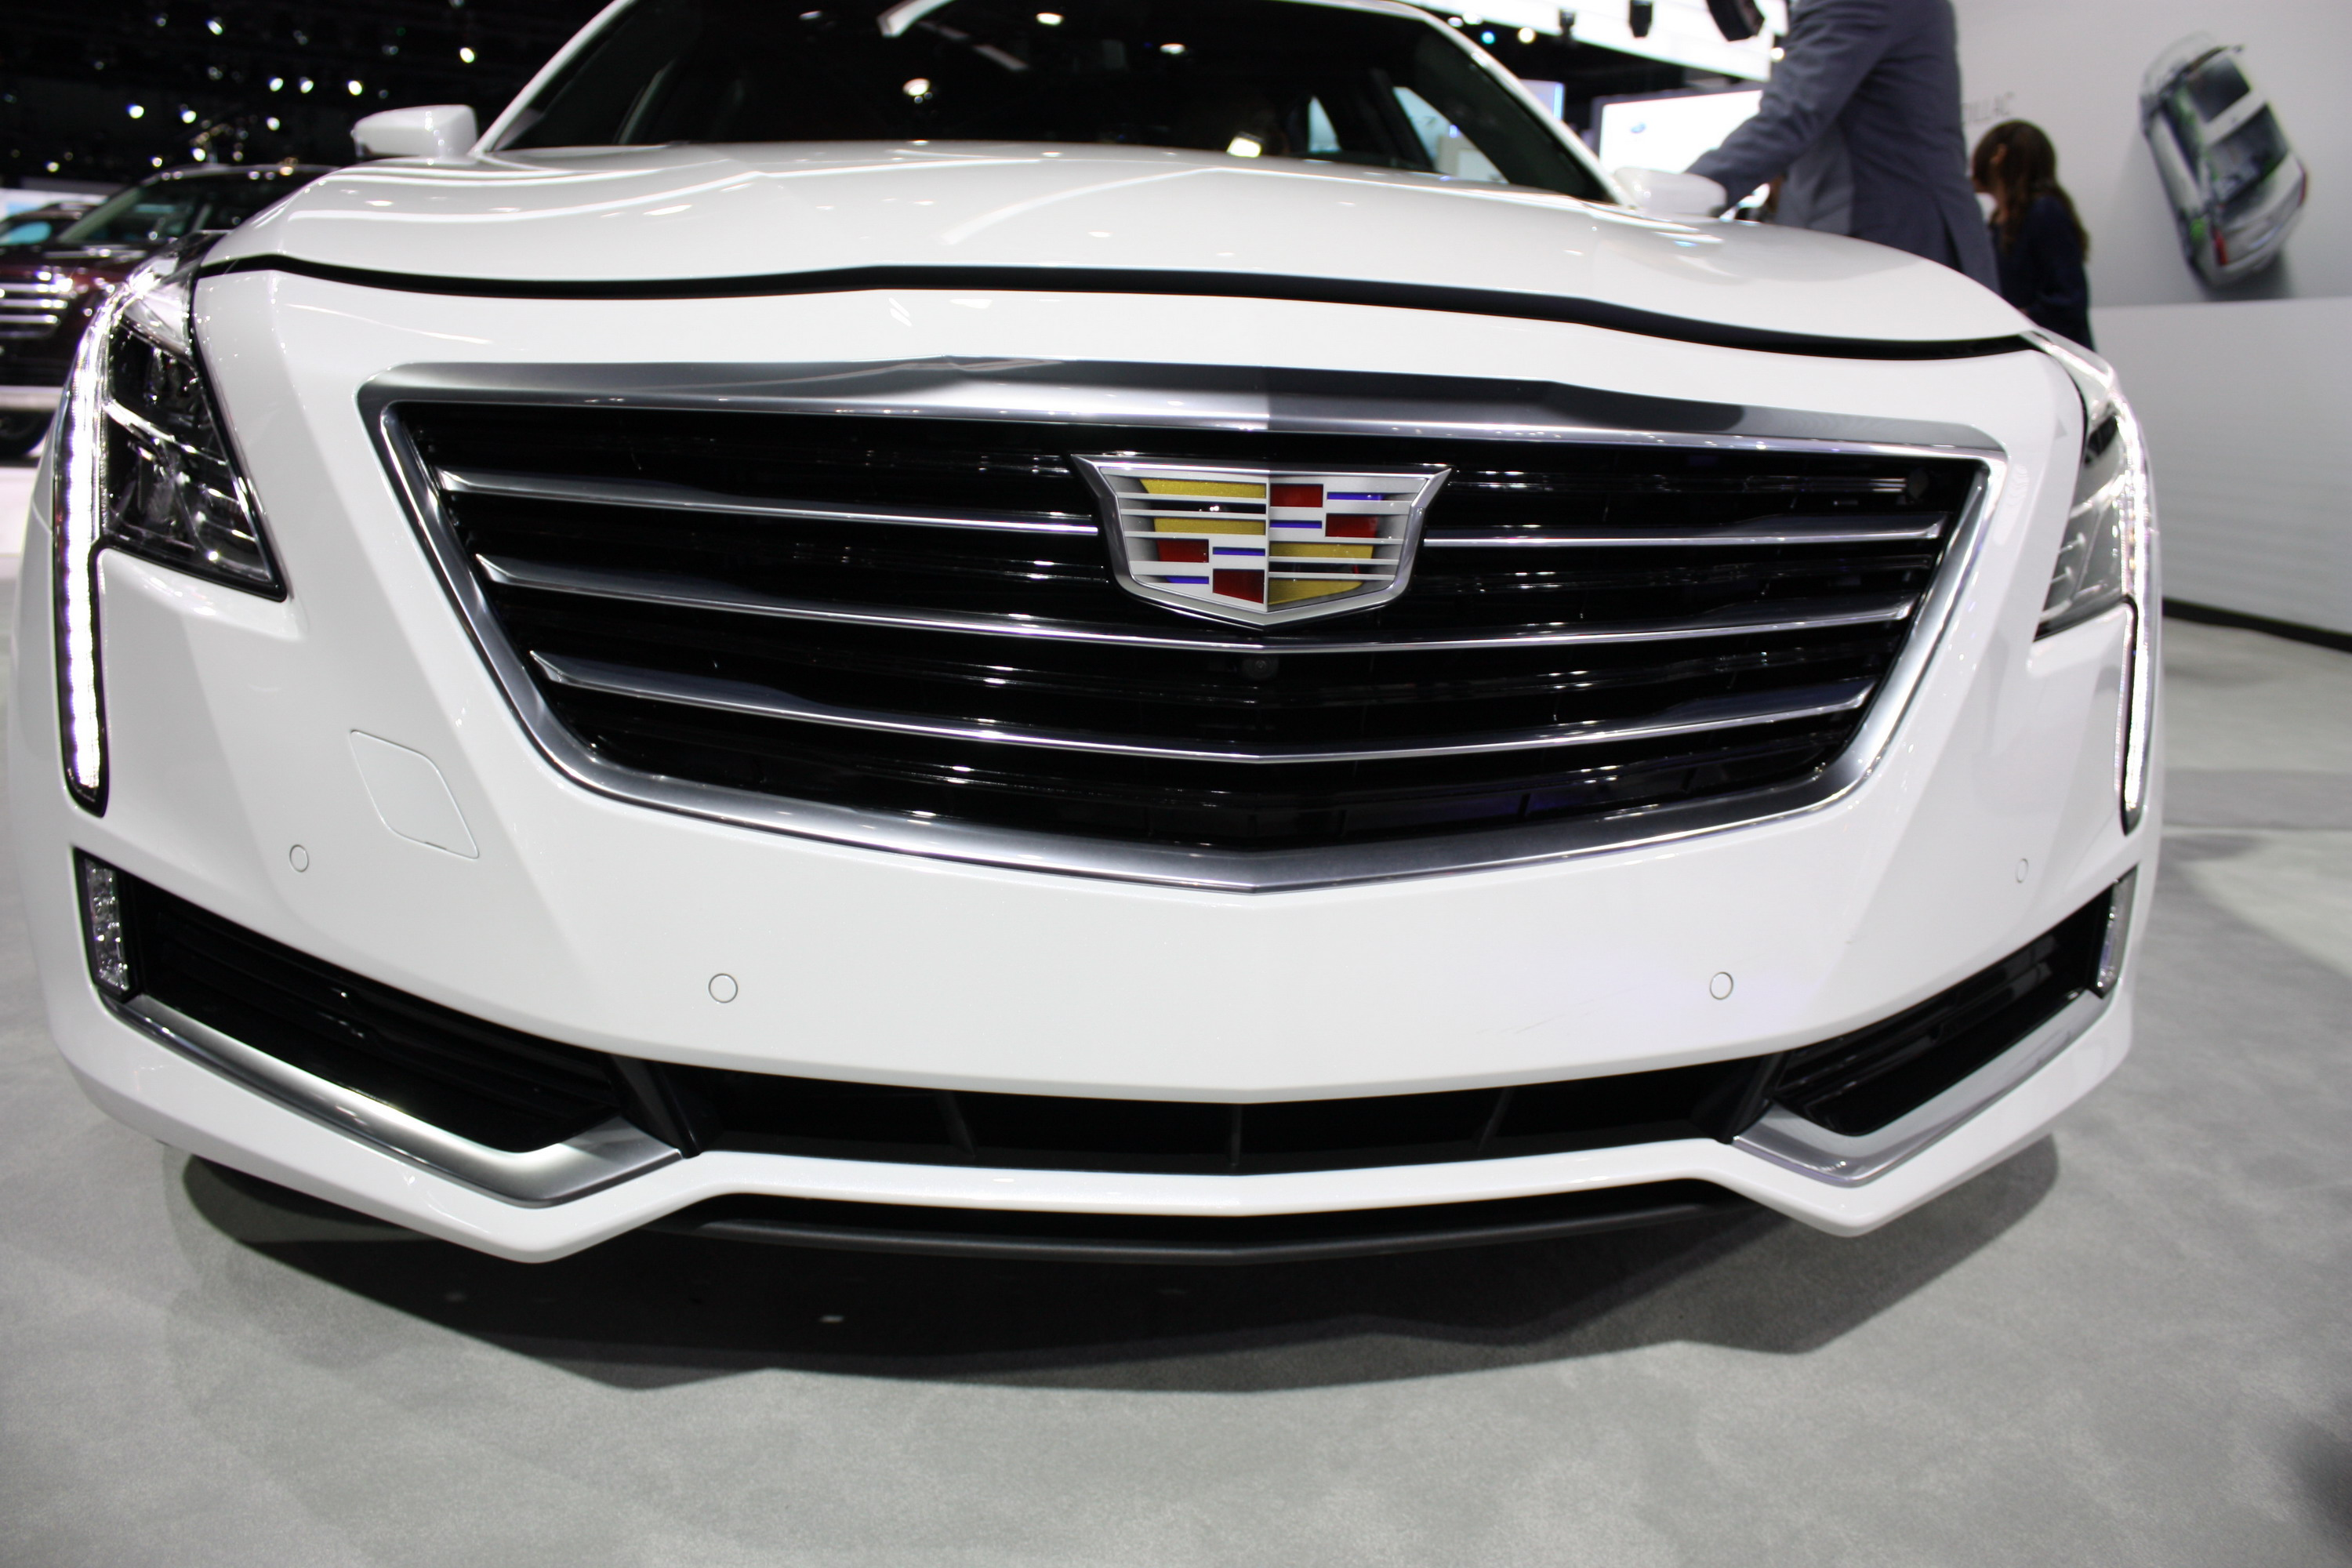 2017 cadillac ct6 plug in hybrid review top speed. Black Bedroom Furniture Sets. Home Design Ideas